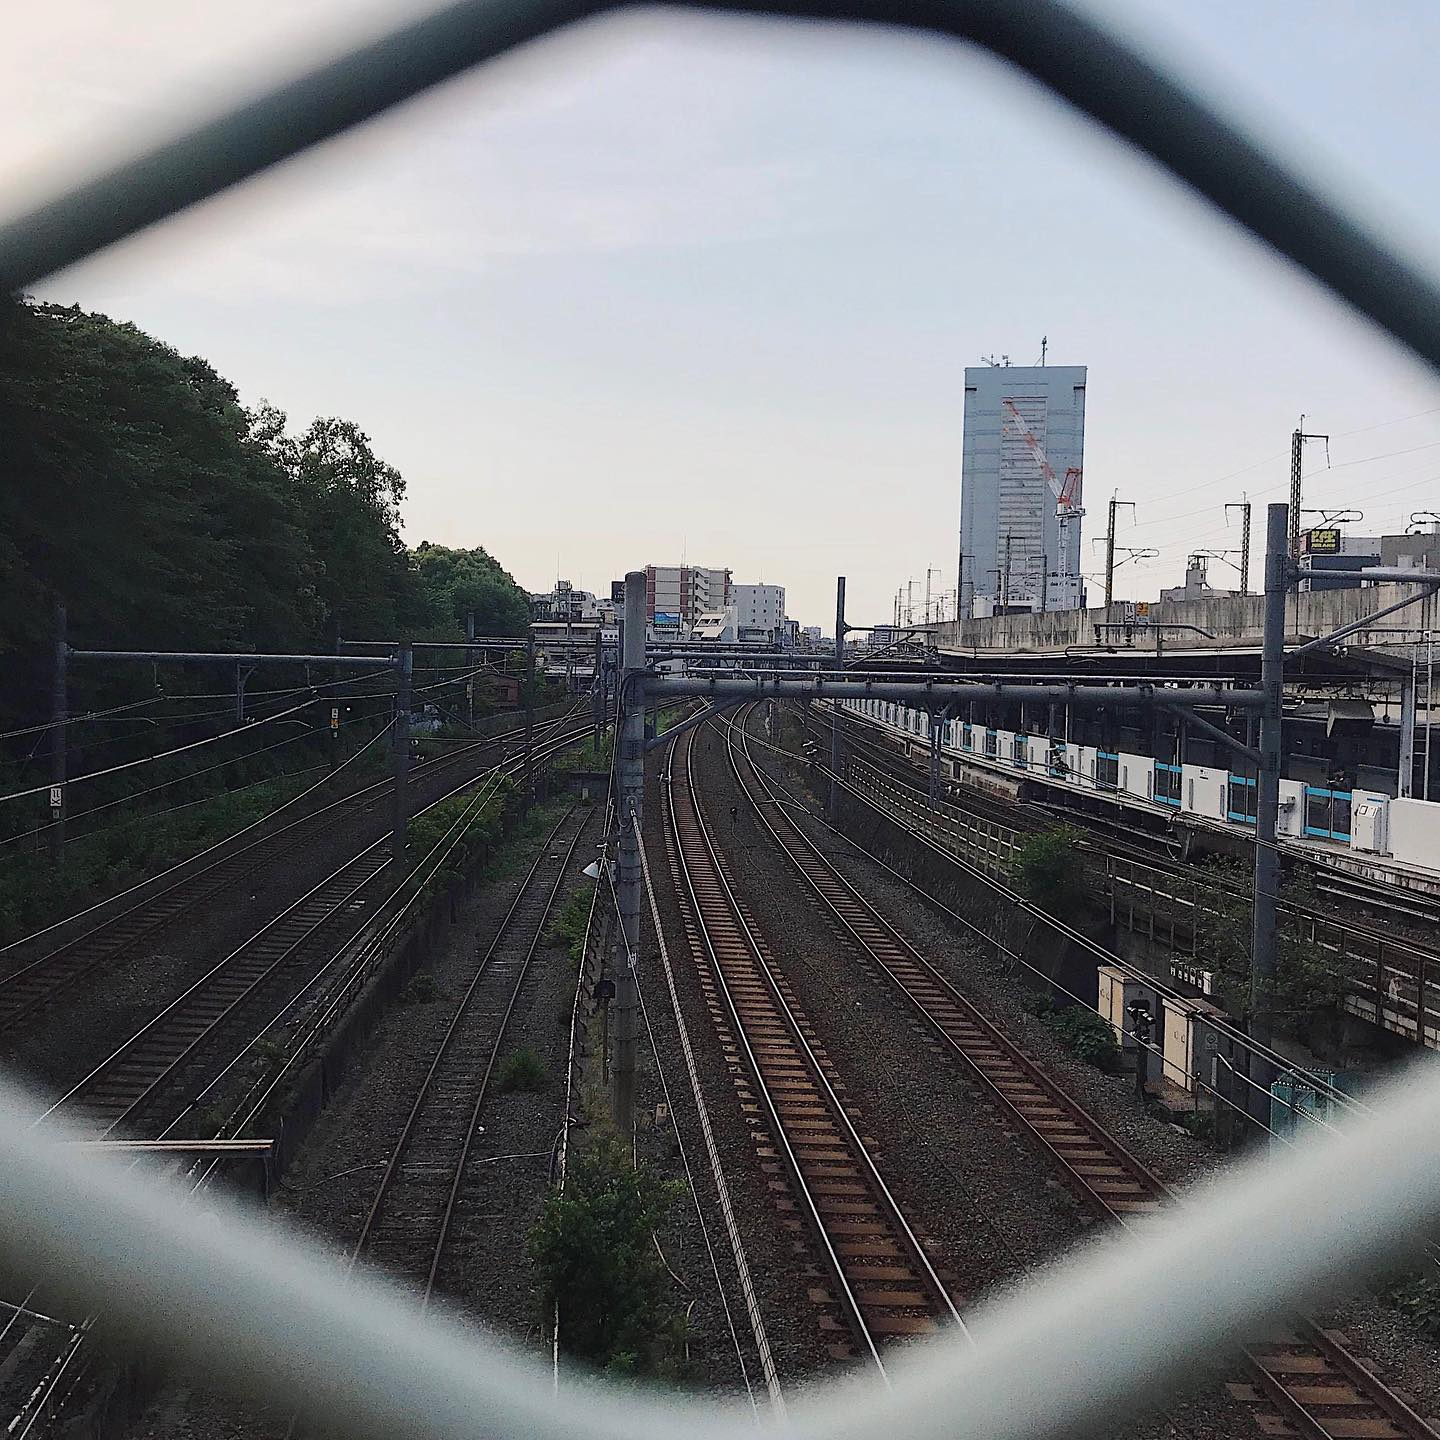 This week's update from AOI Global: Oji Station, Tokyo You can see both local and bullet trains from here!     #filmmakersworld     #shinkansen #whenintokyo